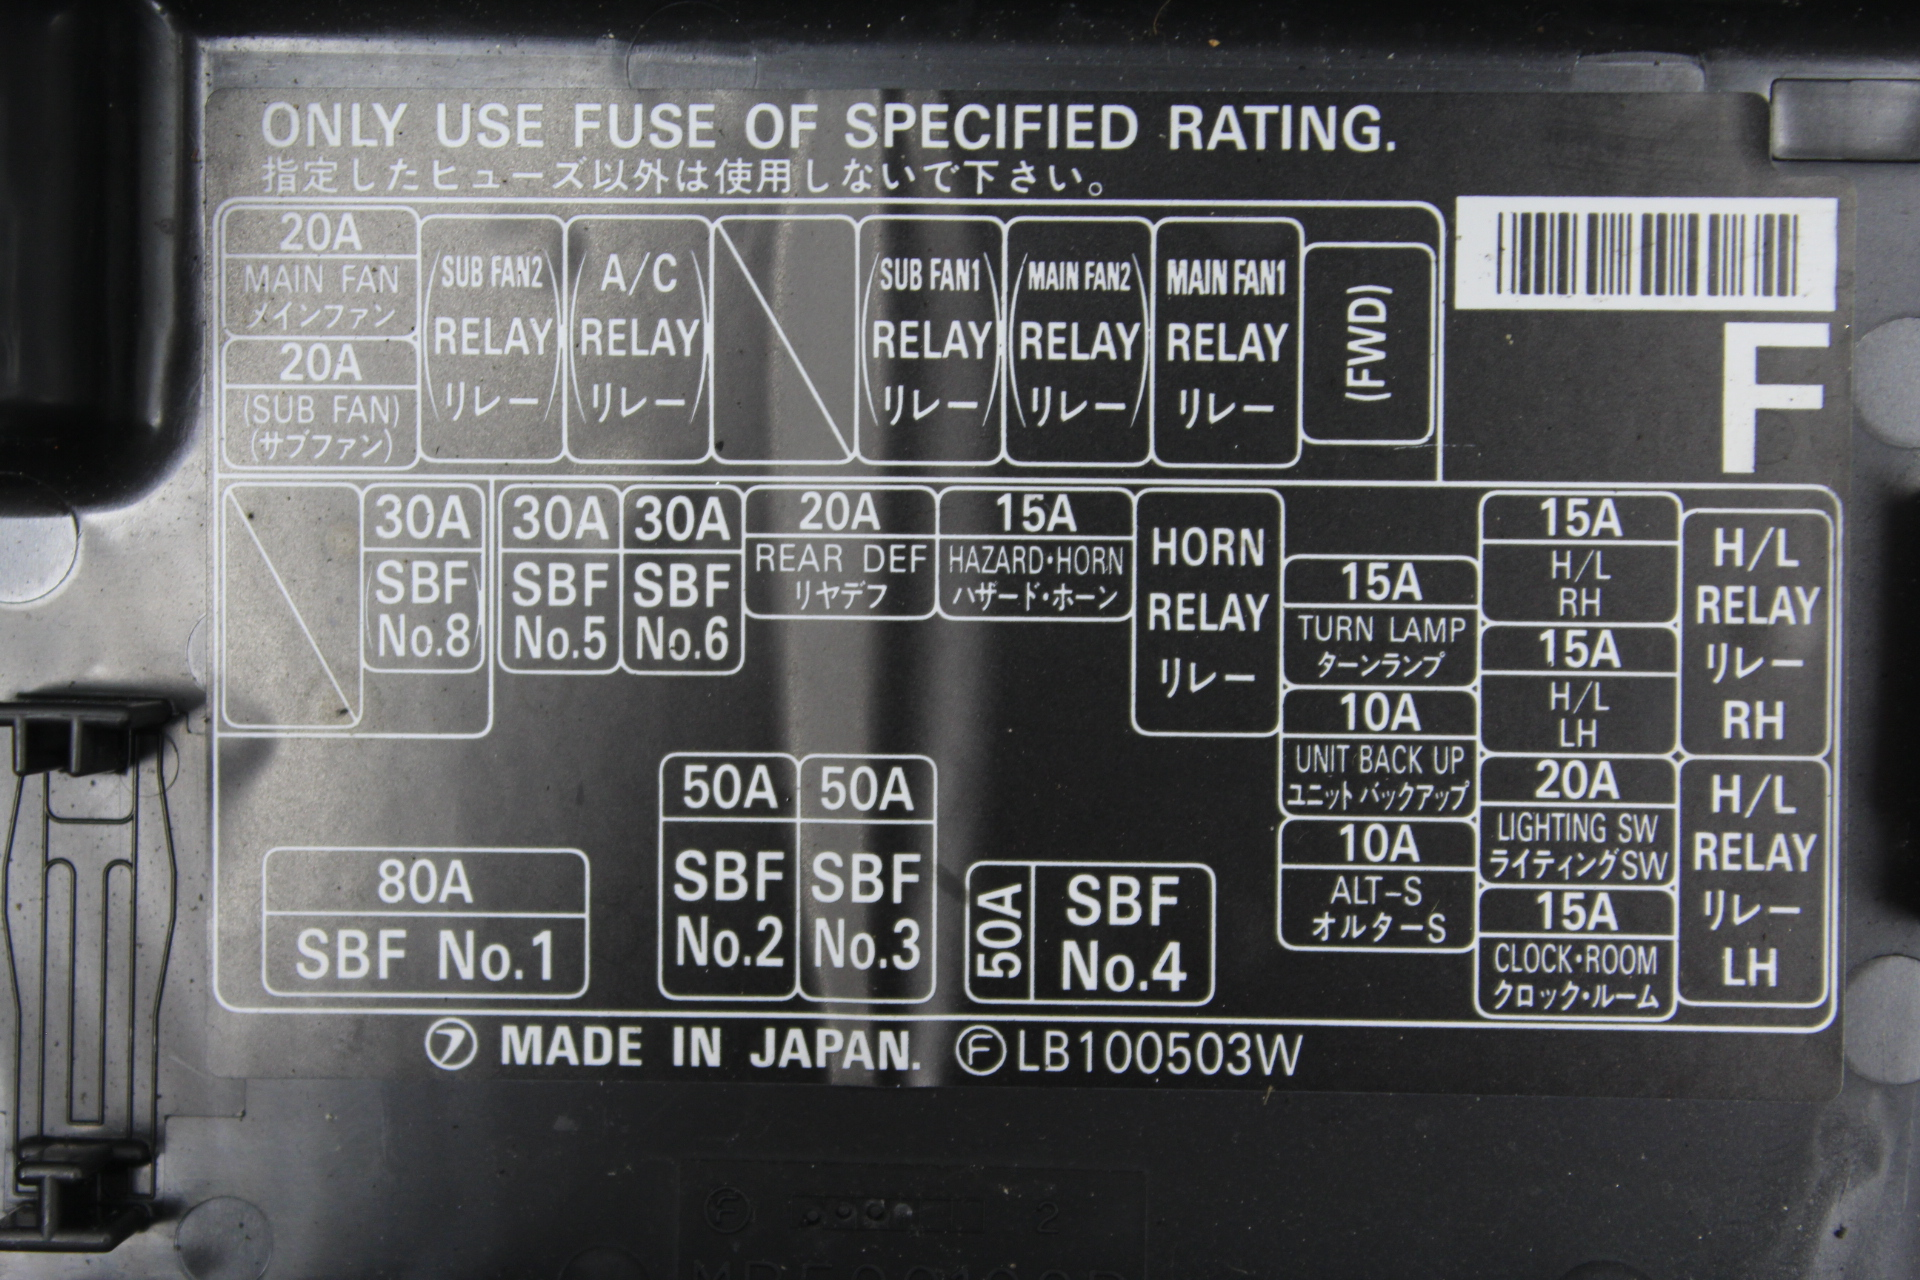 Subaru Impreza Fuse Box Diagram On Alternator Wiring Diagram Symbol